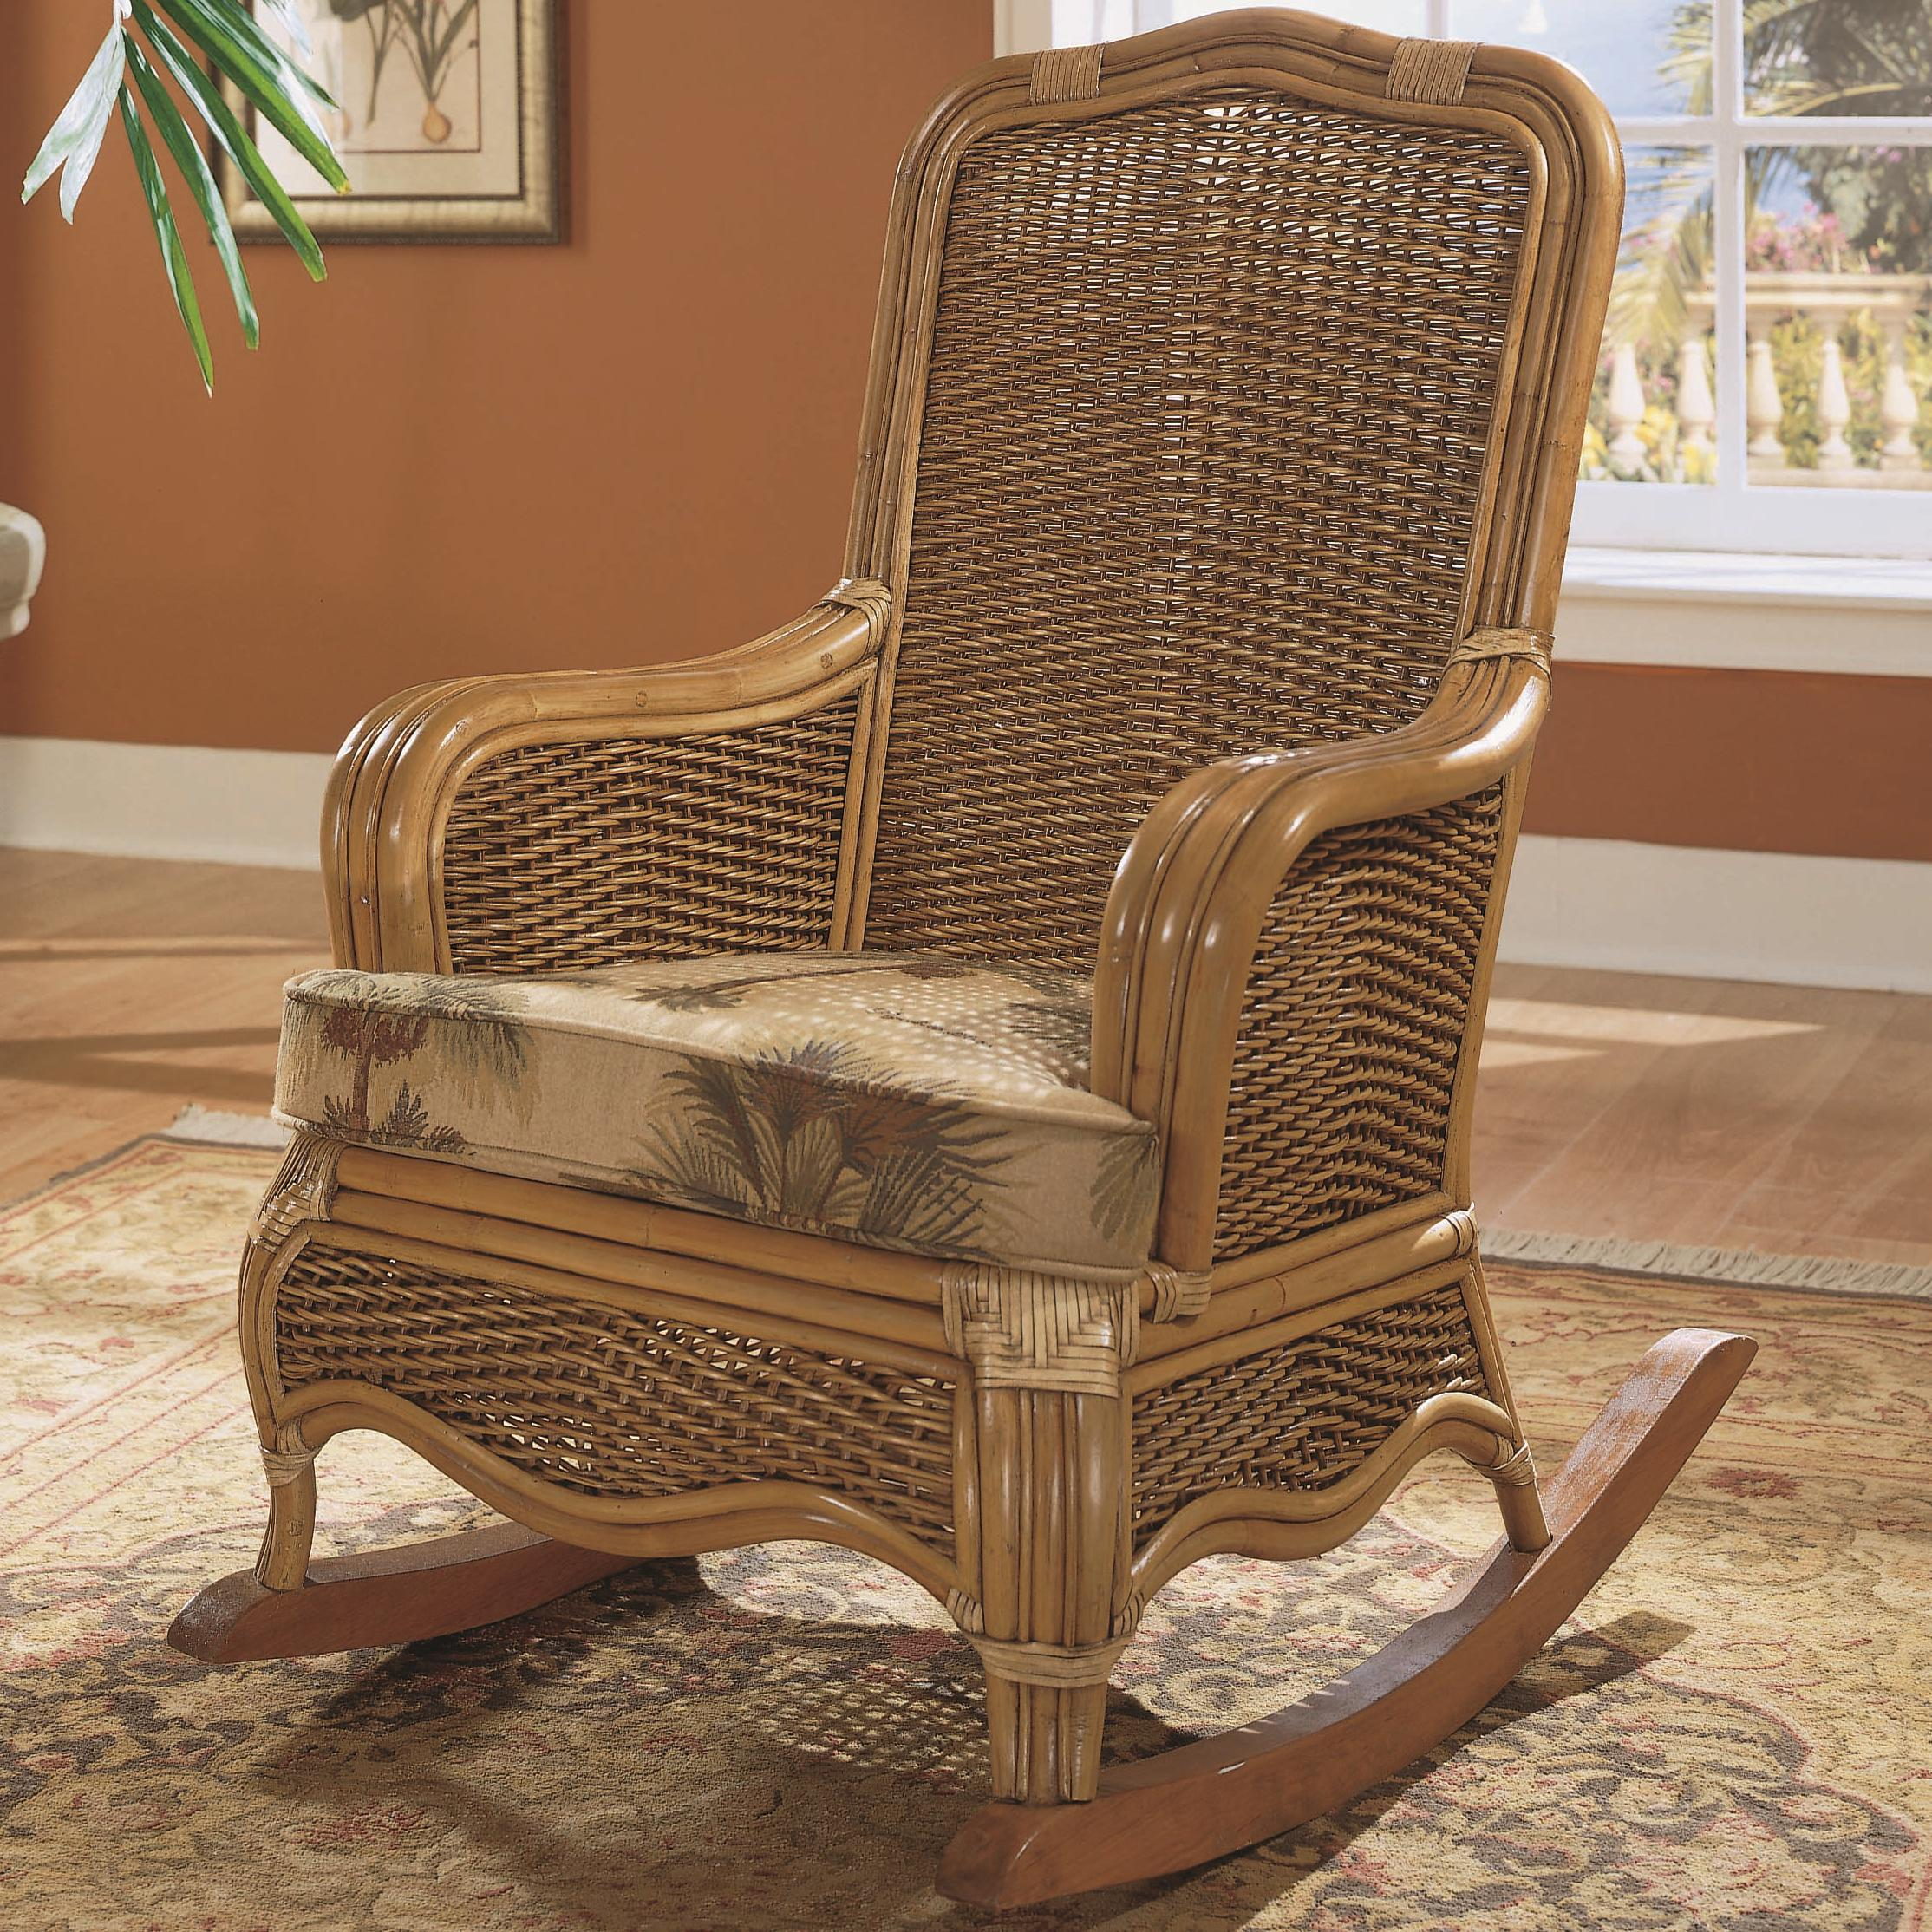 Braxton Culler Shorewood Tropical Rattan Rocking Chair with Loose